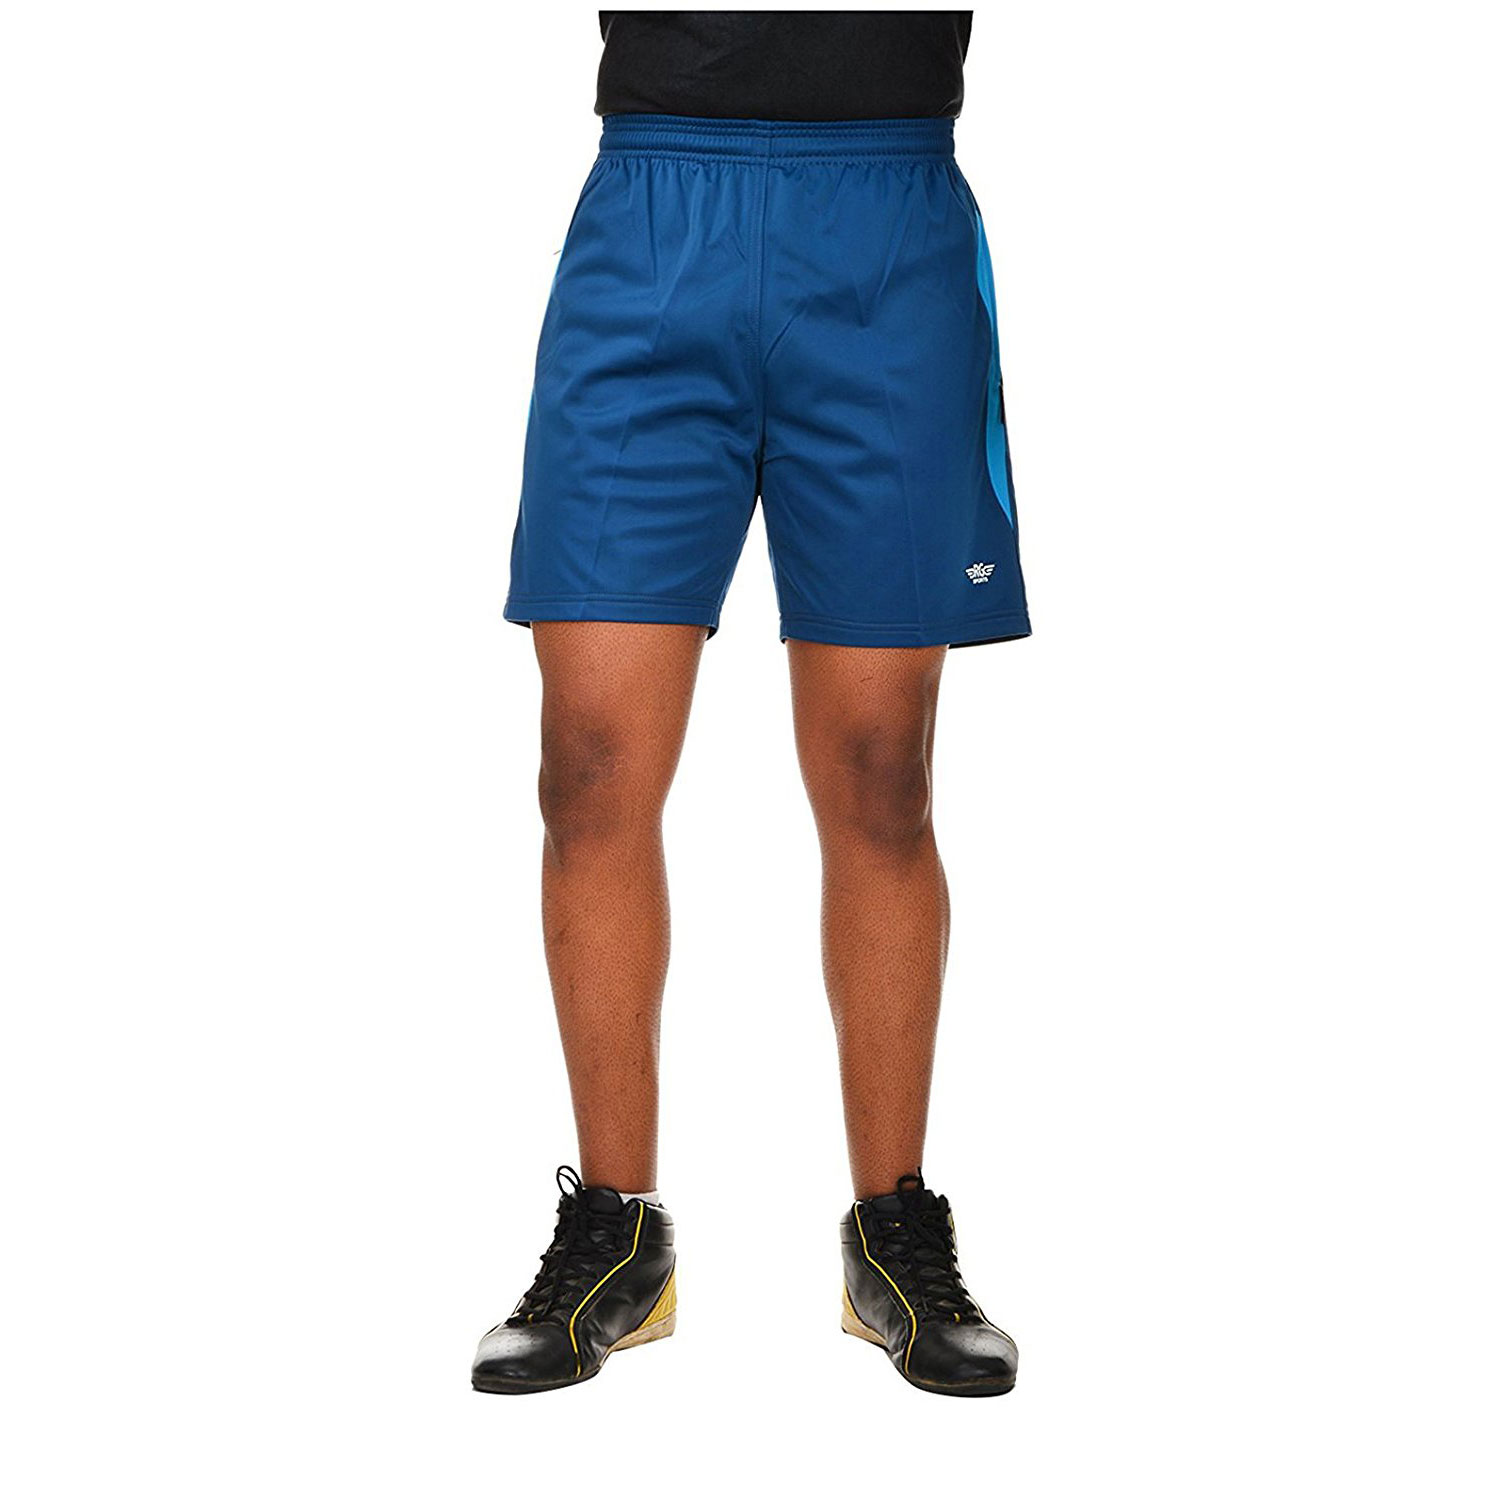 R G SPORTS Unisex Synthetic Shorts